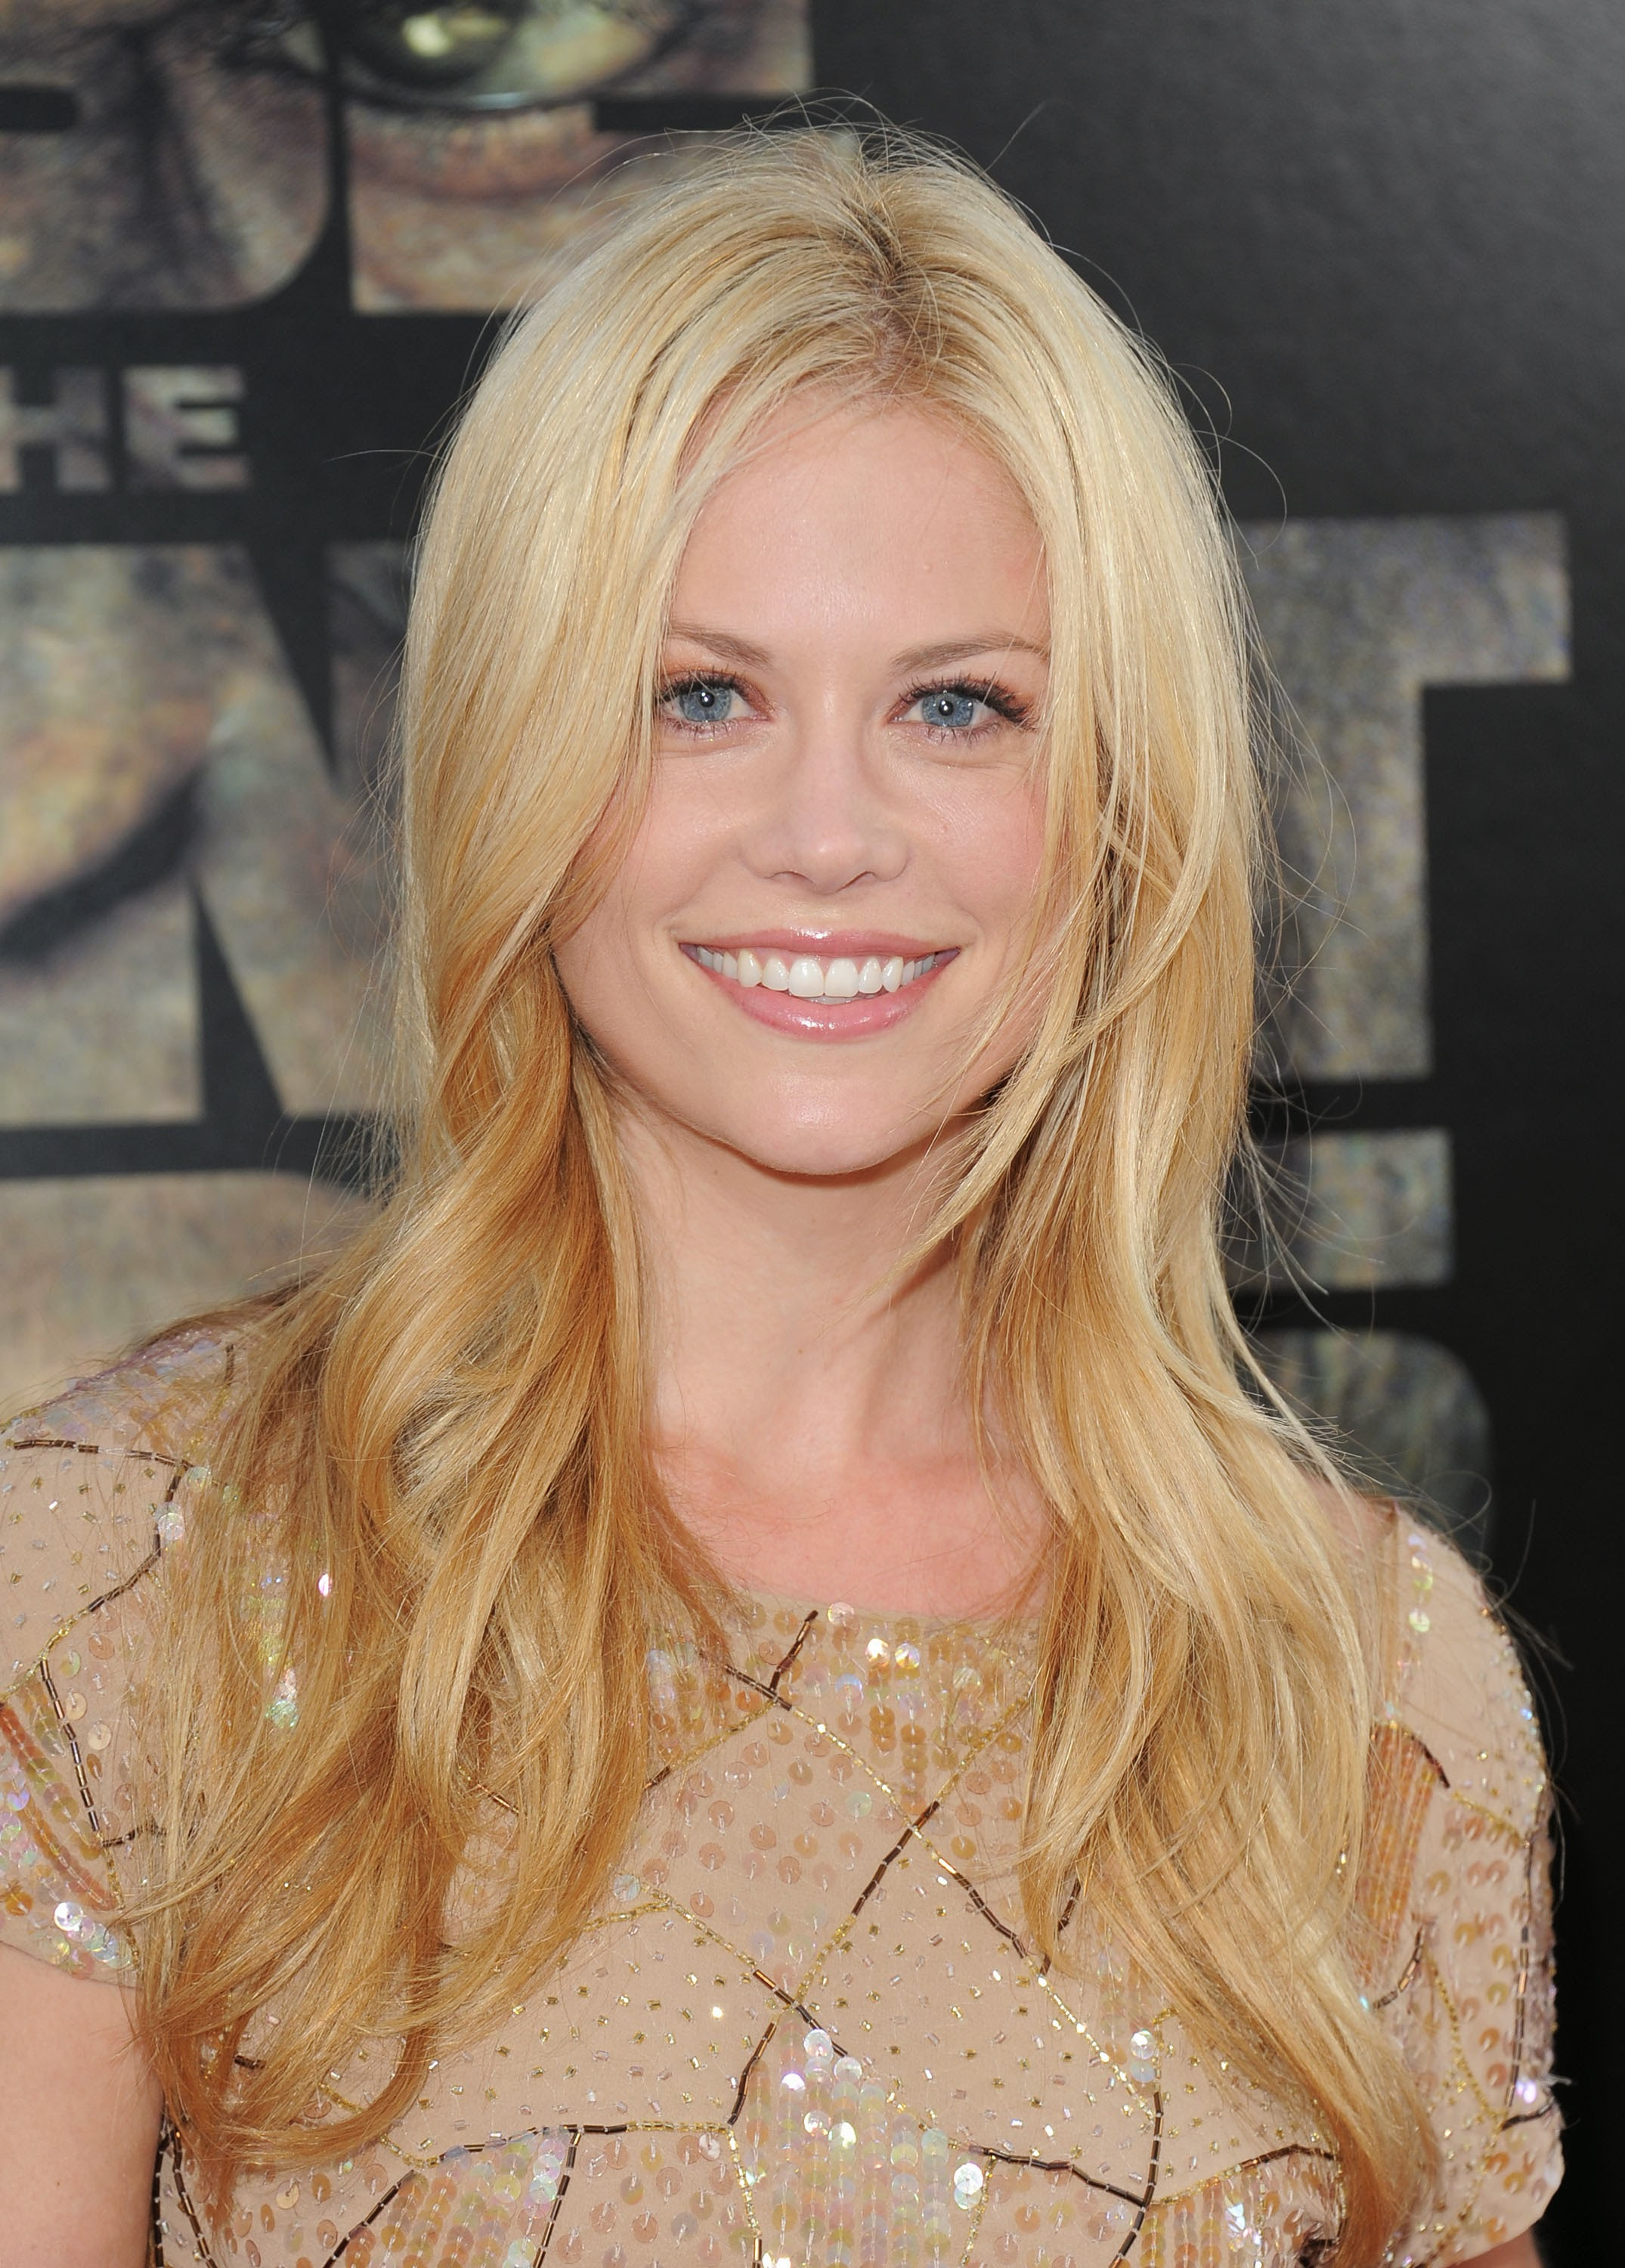 claire coffee wallpaper pictures - photo #22